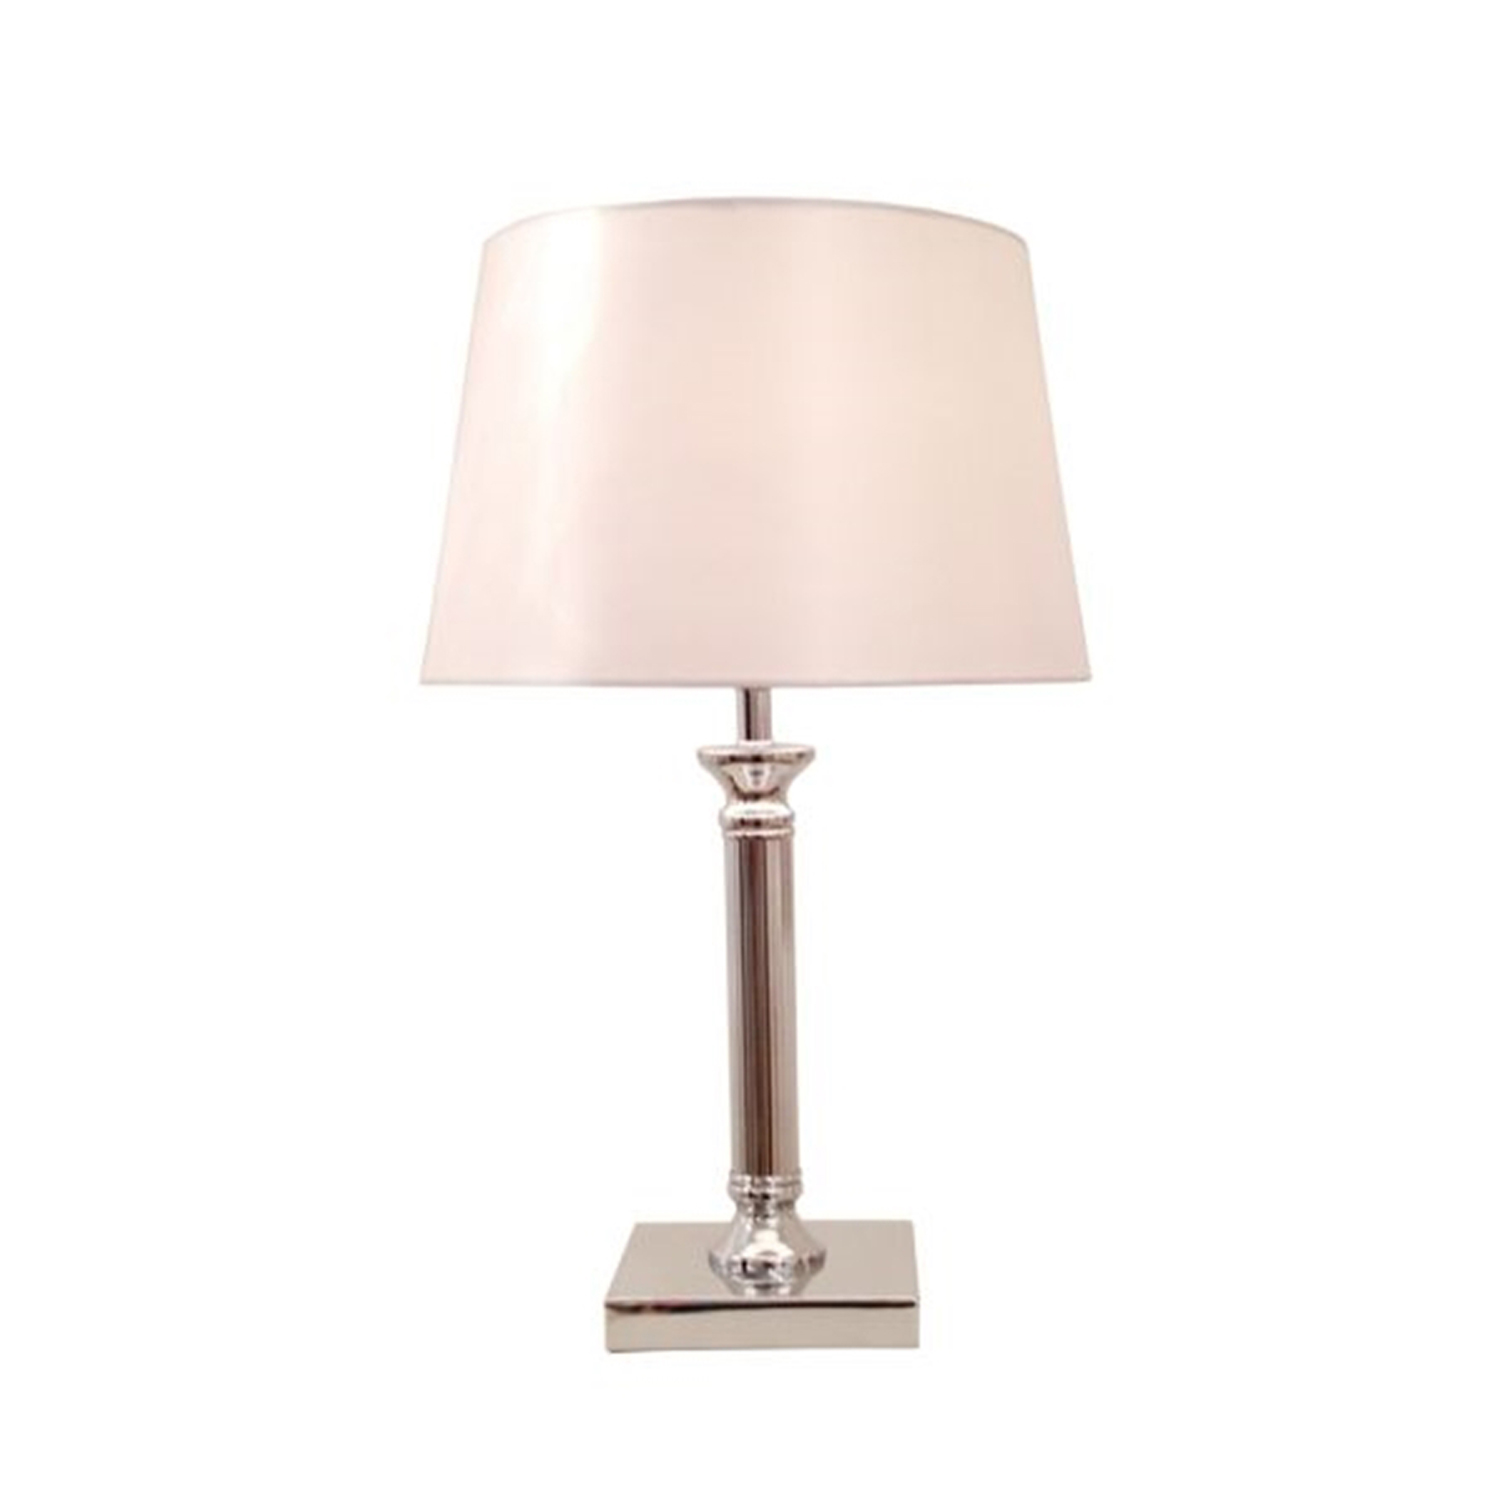 "12"" Mansion Table Lamp, White"